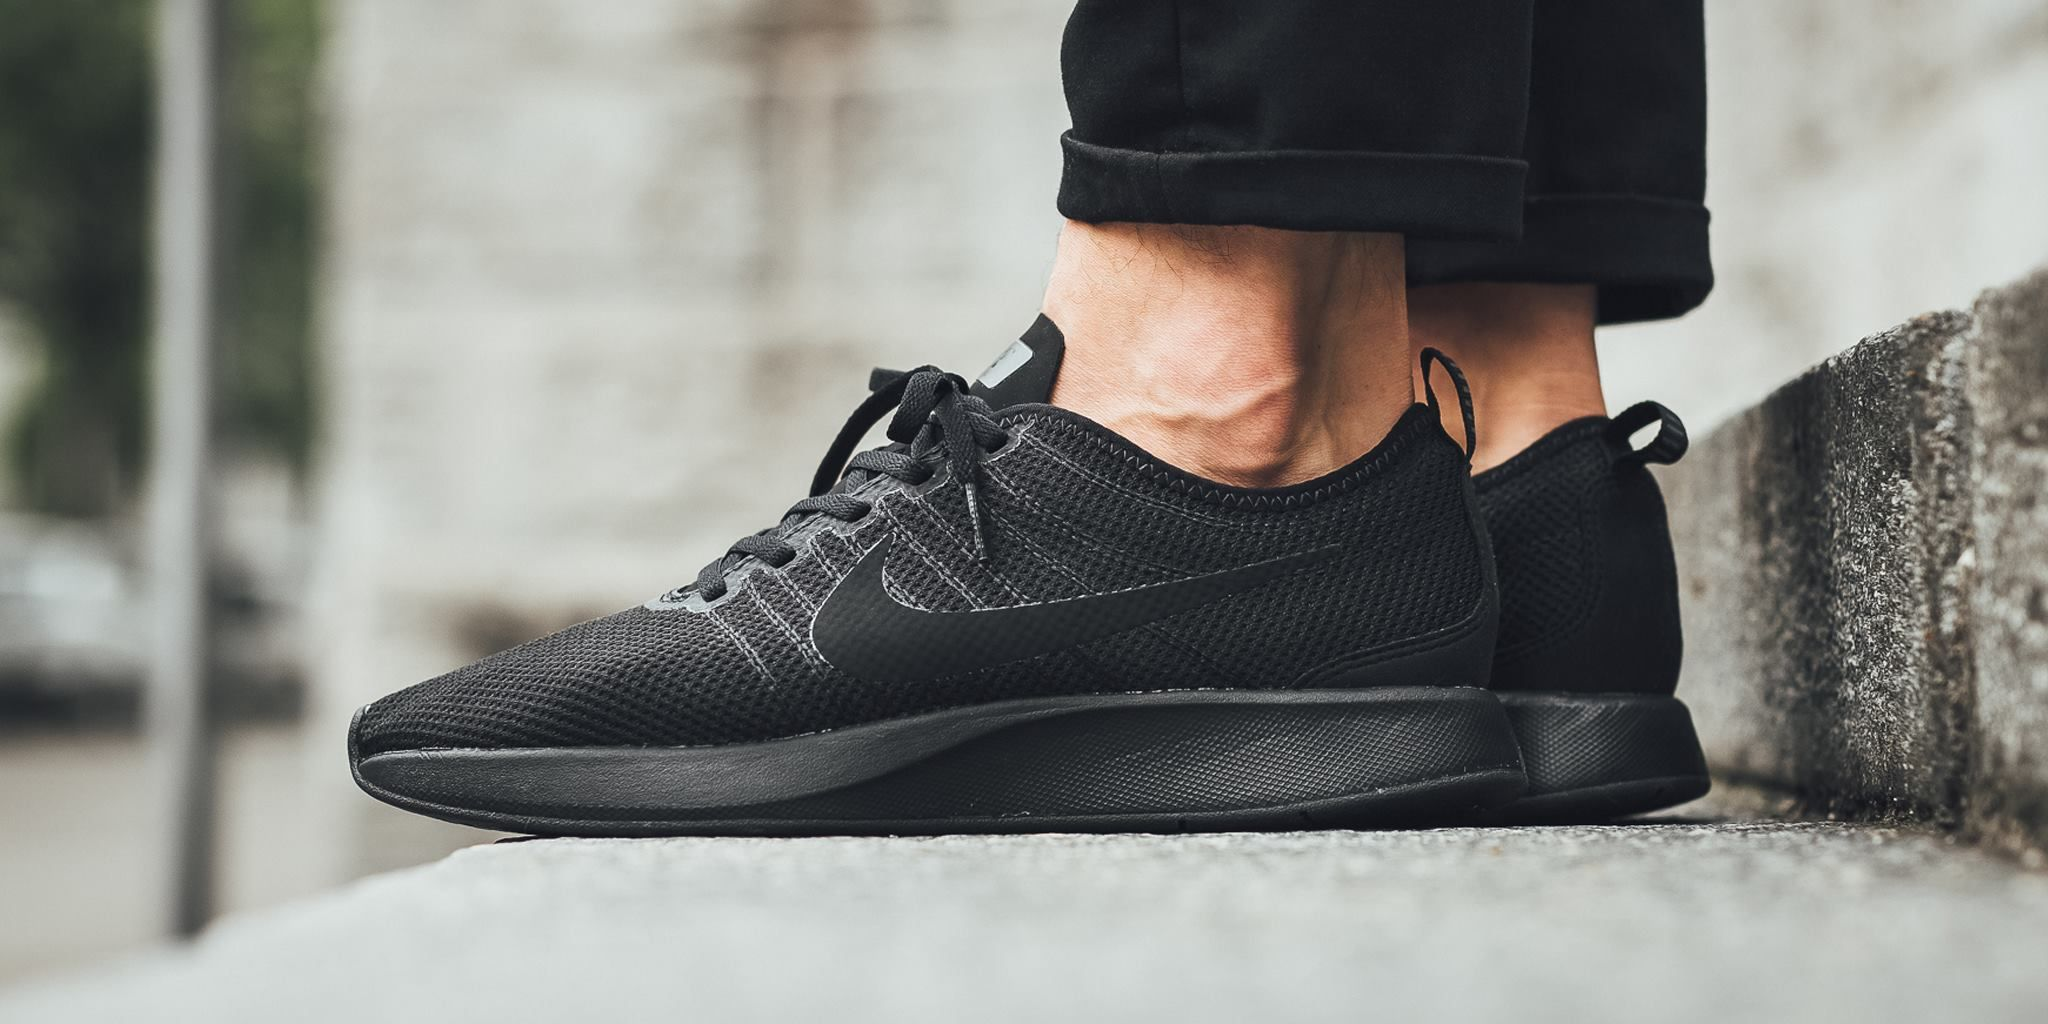 585600fd61c0 The Nike Dualtone Racer is featured in a new triple black colorway for Fall  2017.